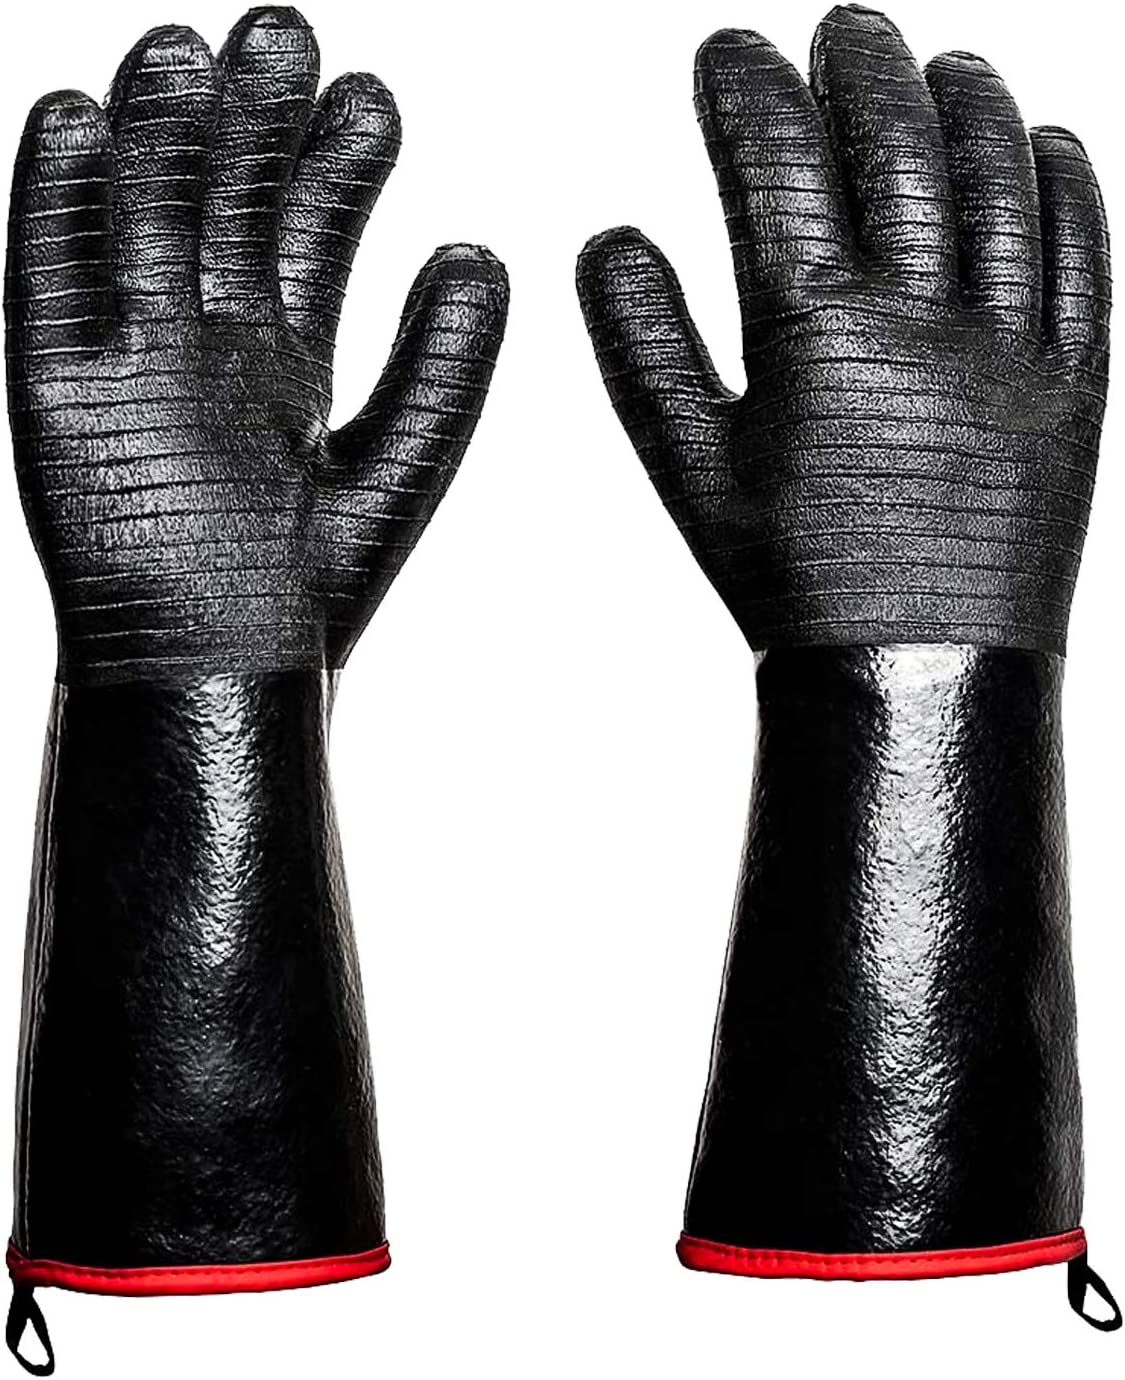 Rayocon BBQ Grill Gloves 932°F Heat Resistance Barbecue Grilling Gloves Kitchen Oven Mitts Cooking Gloves for Turkey Fryer/Cooking/Baking/Welding/Cutting/Frying, 14 Inch (14 inch)